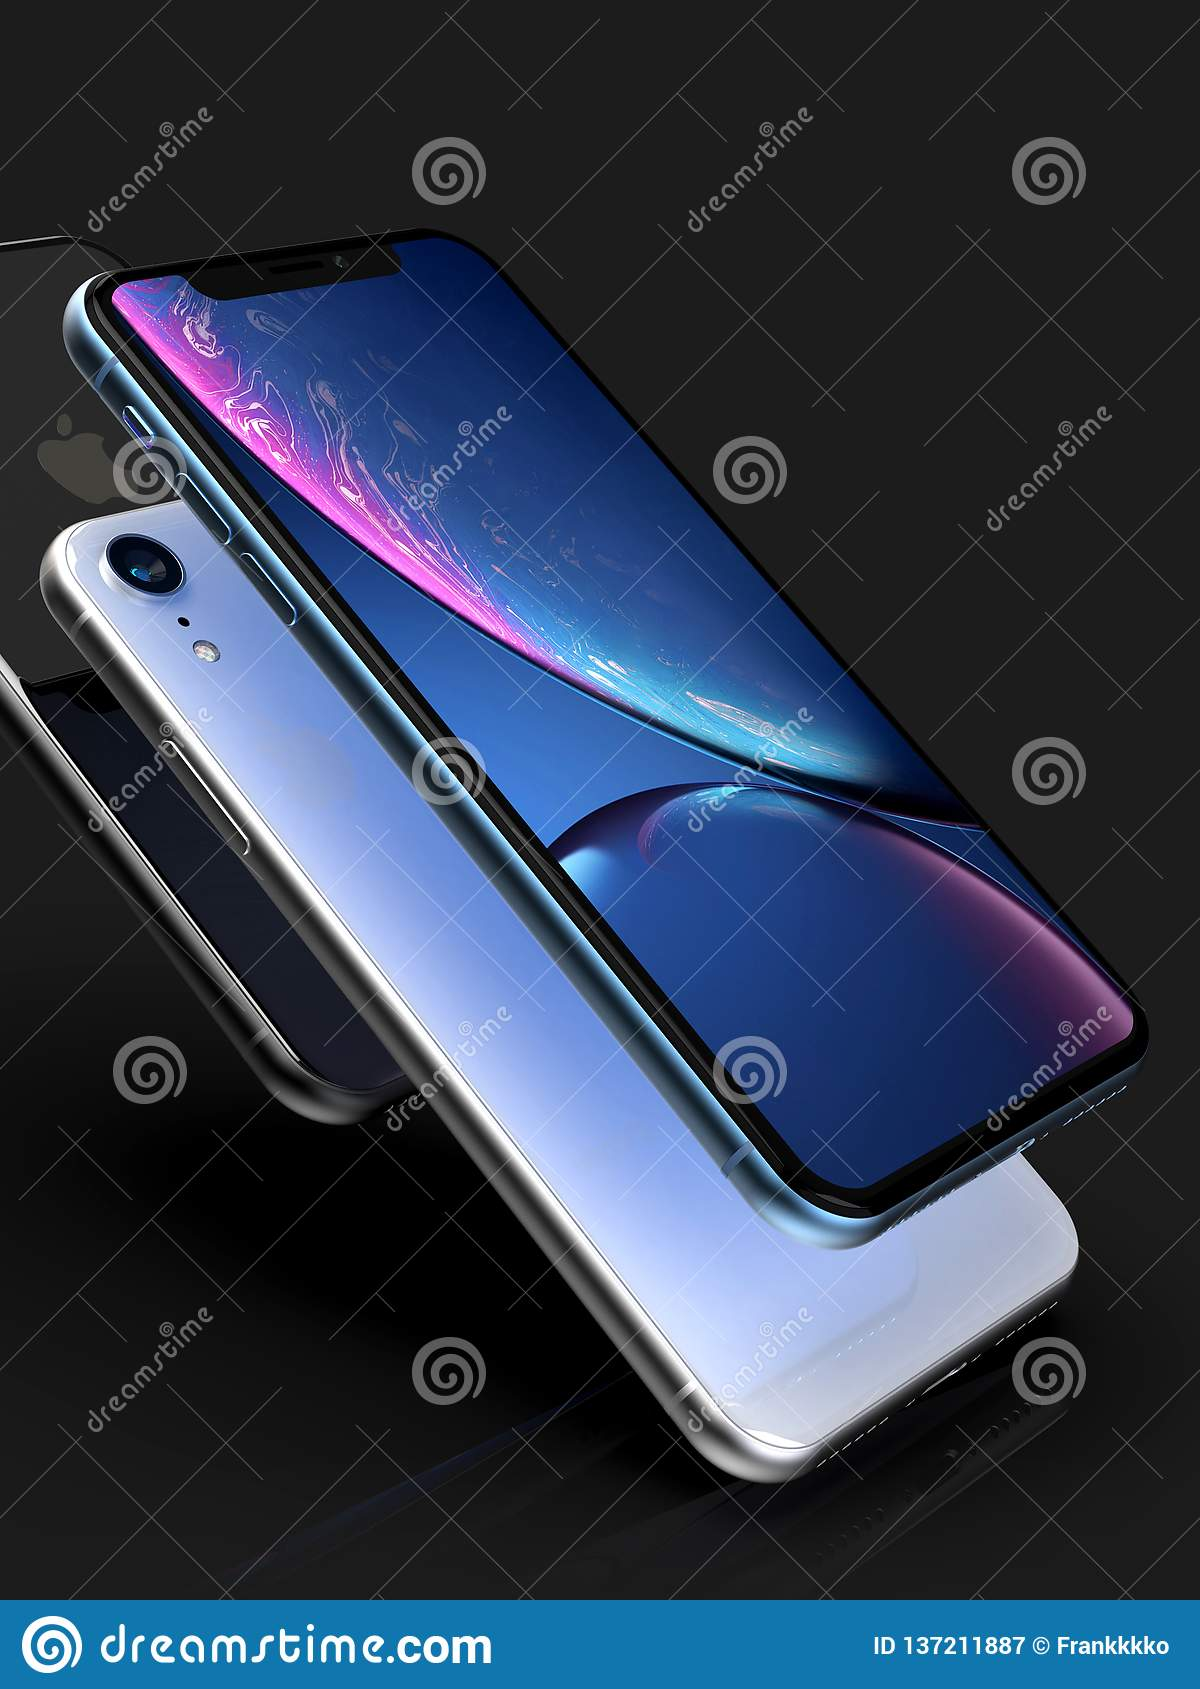 3 Iphone Xr Blue Silver And Space Grey Smart Phones On